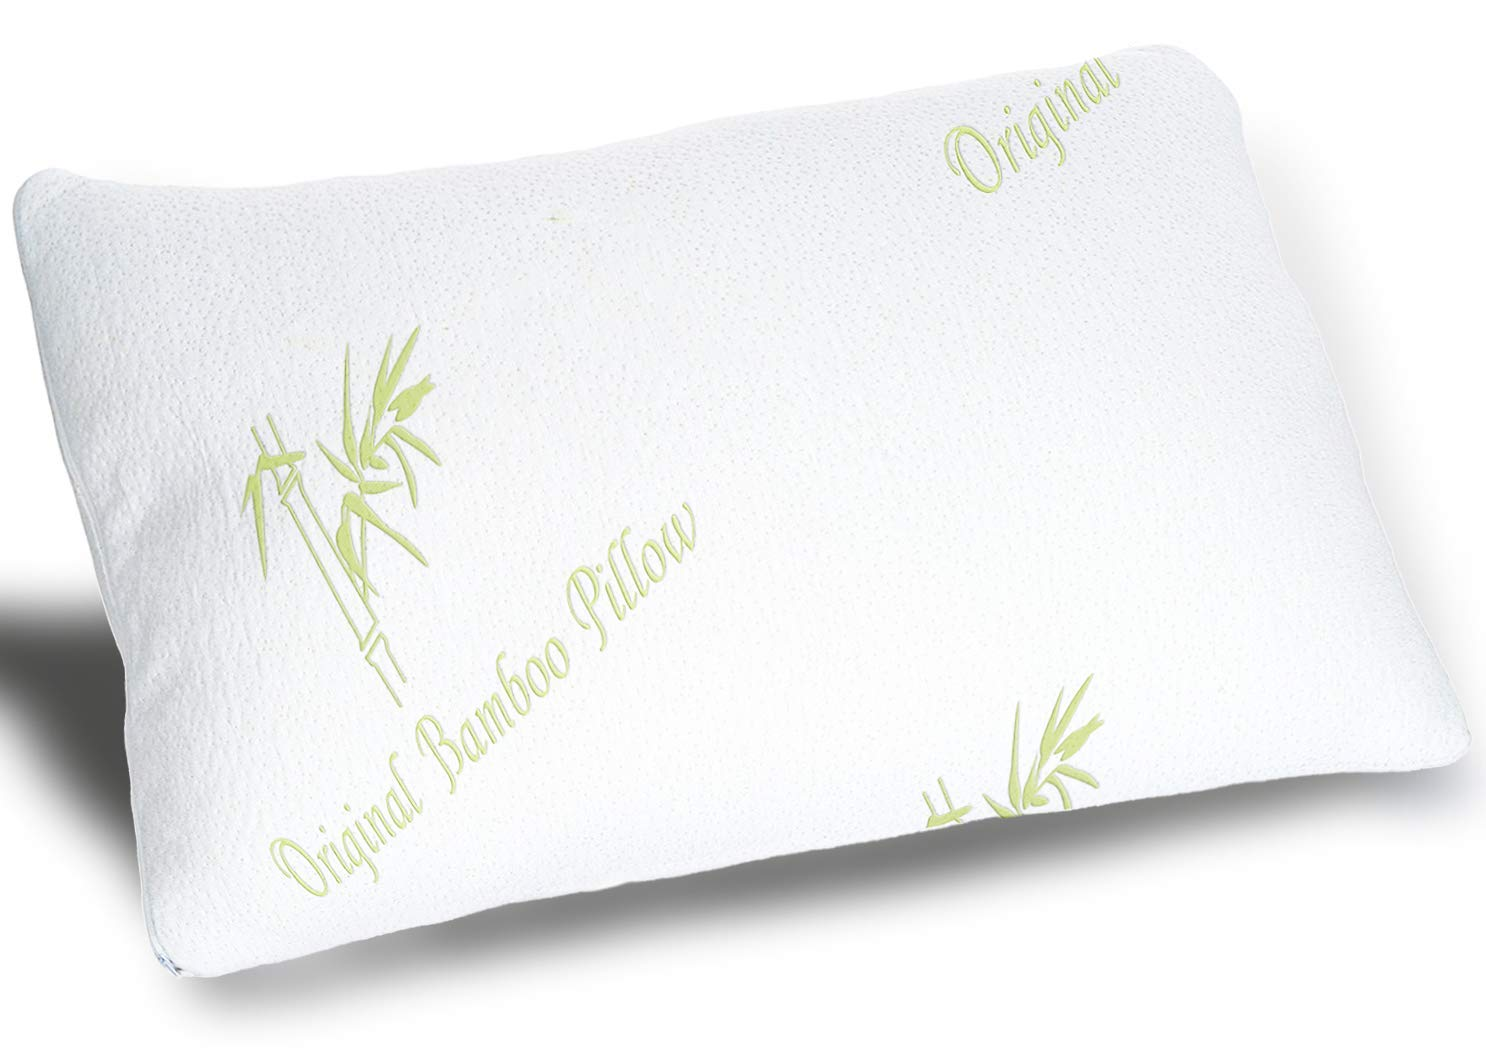 Adjustable Shredded Memory Foam Pillow - Original Bamboo